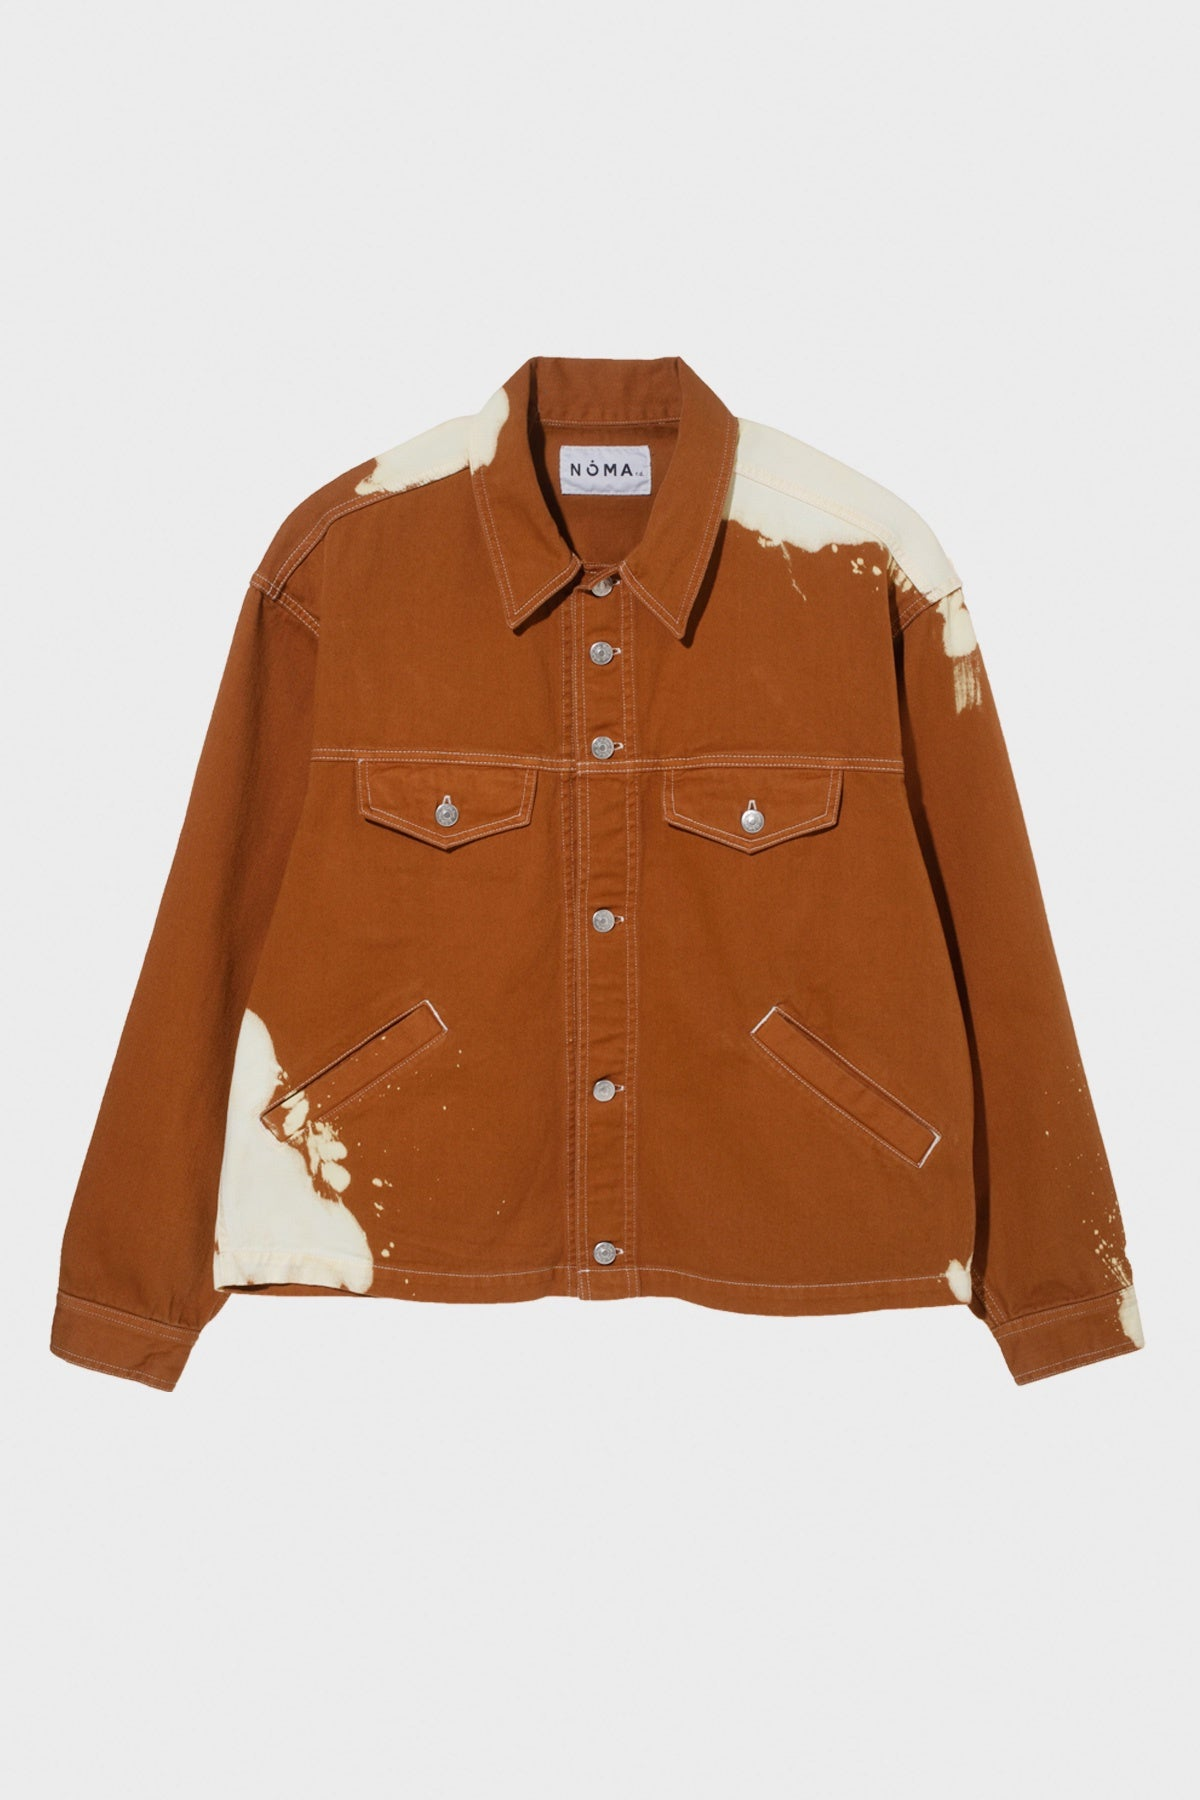 Noma t.d. - Painter Trucker Jacket - Walnut - Canoe Club